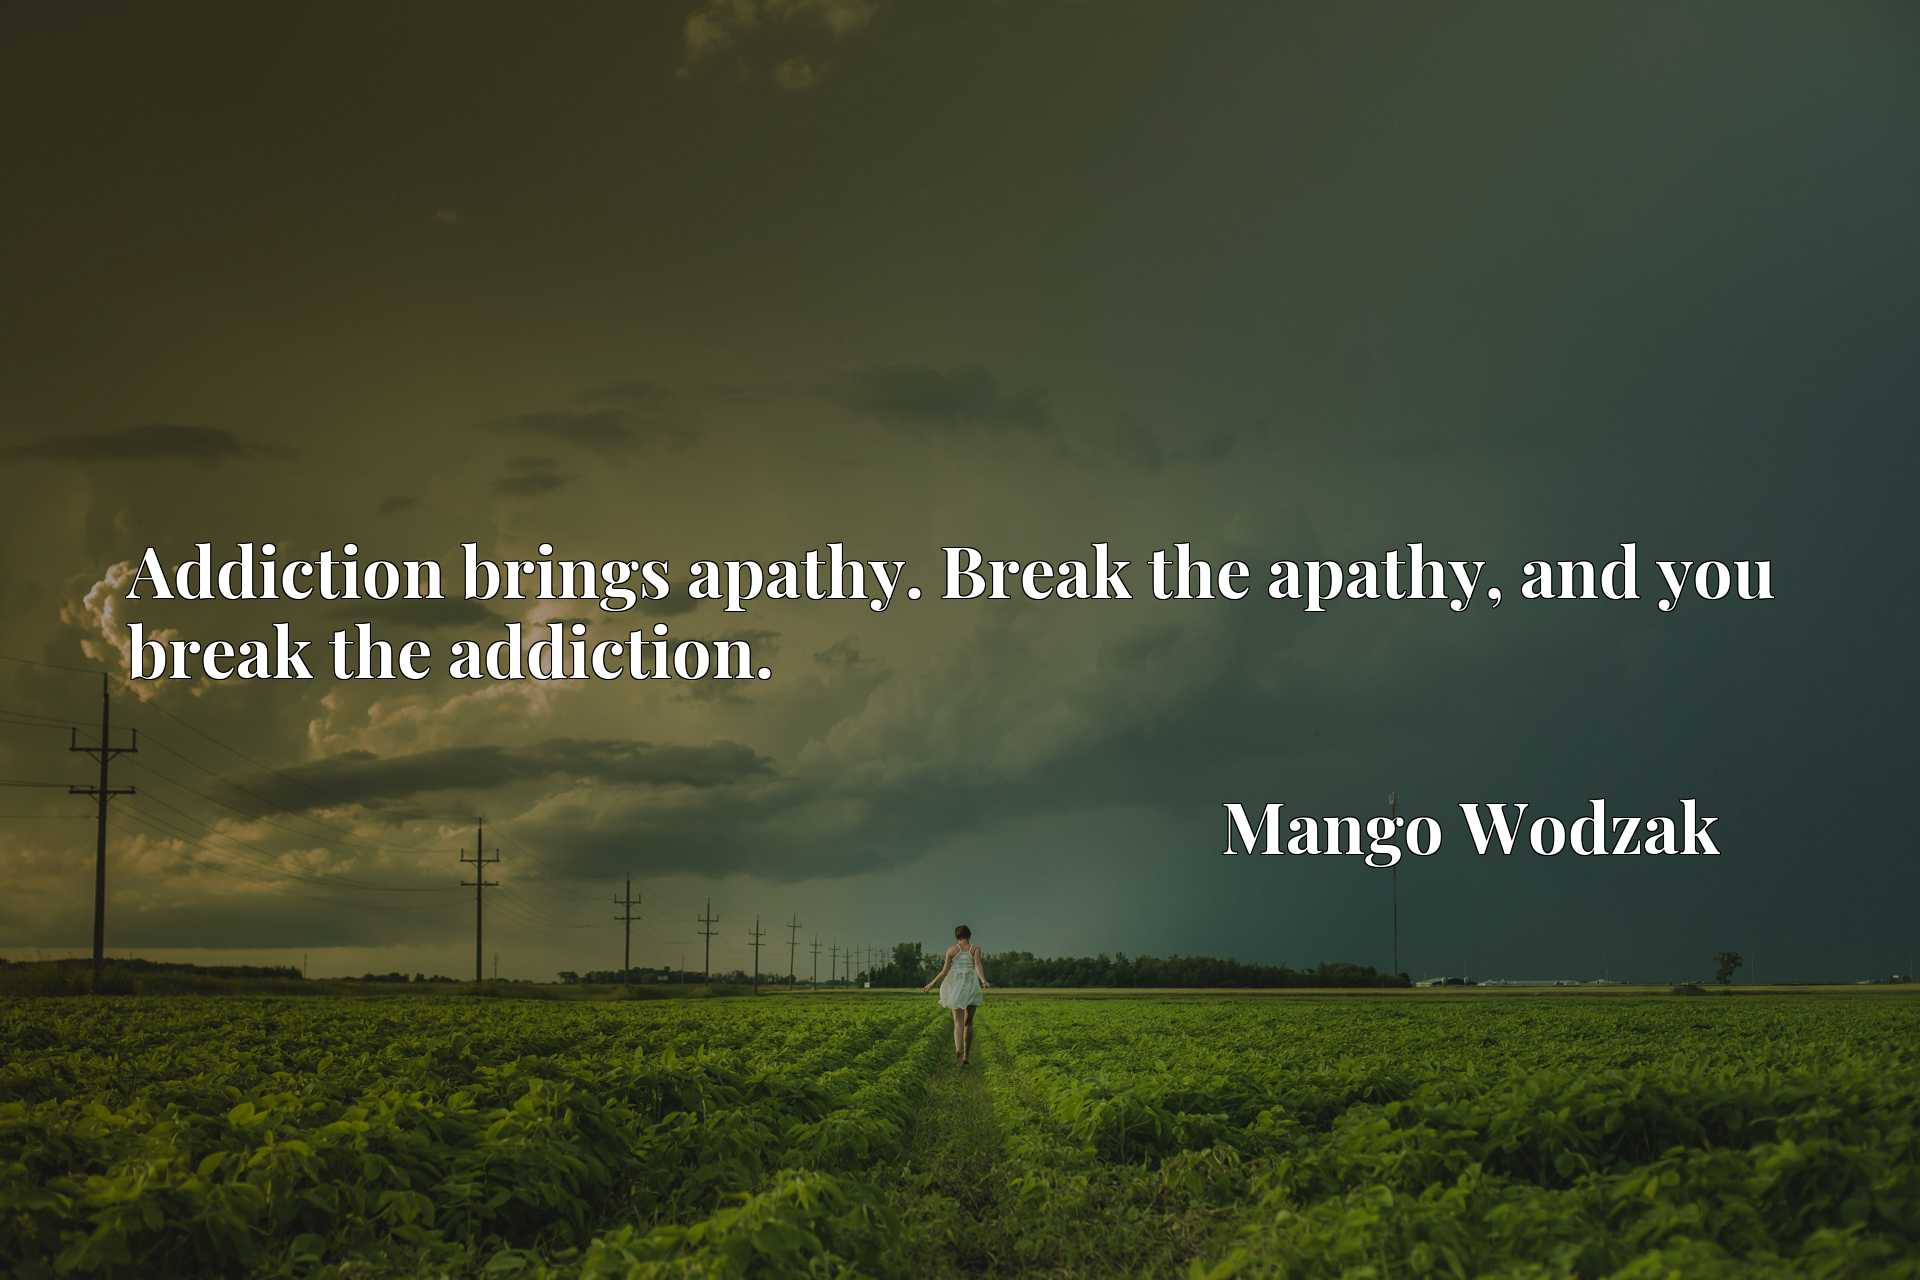 Addiction brings apathy. Break the apathy, and you break the addiction.